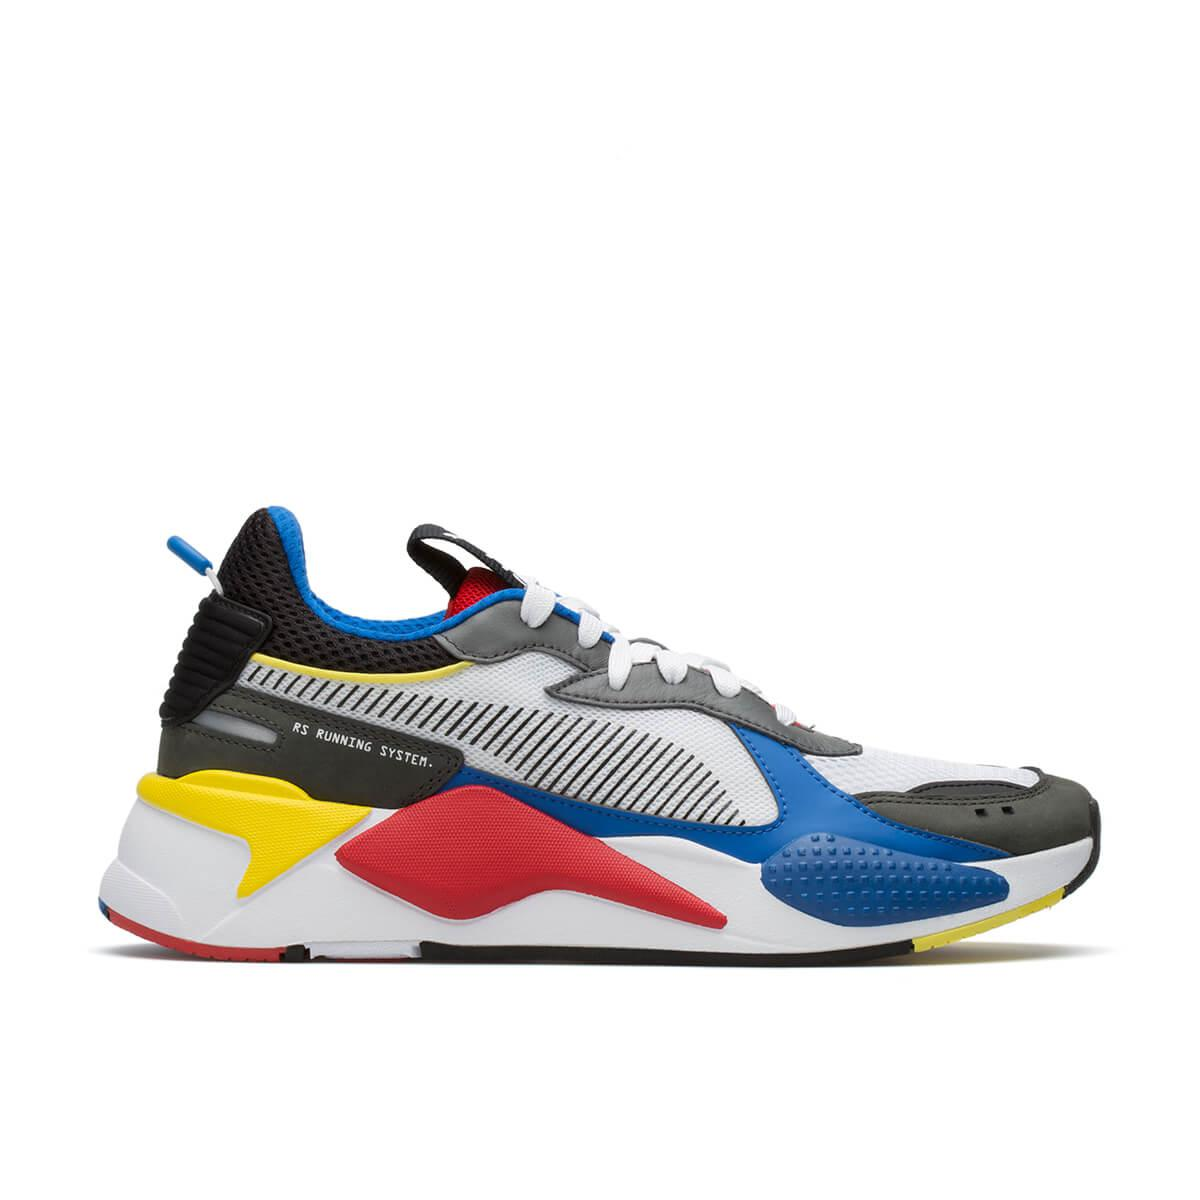 Lyst - PUMA Rs-x Toys Sneakers in White for Men 8443a850e